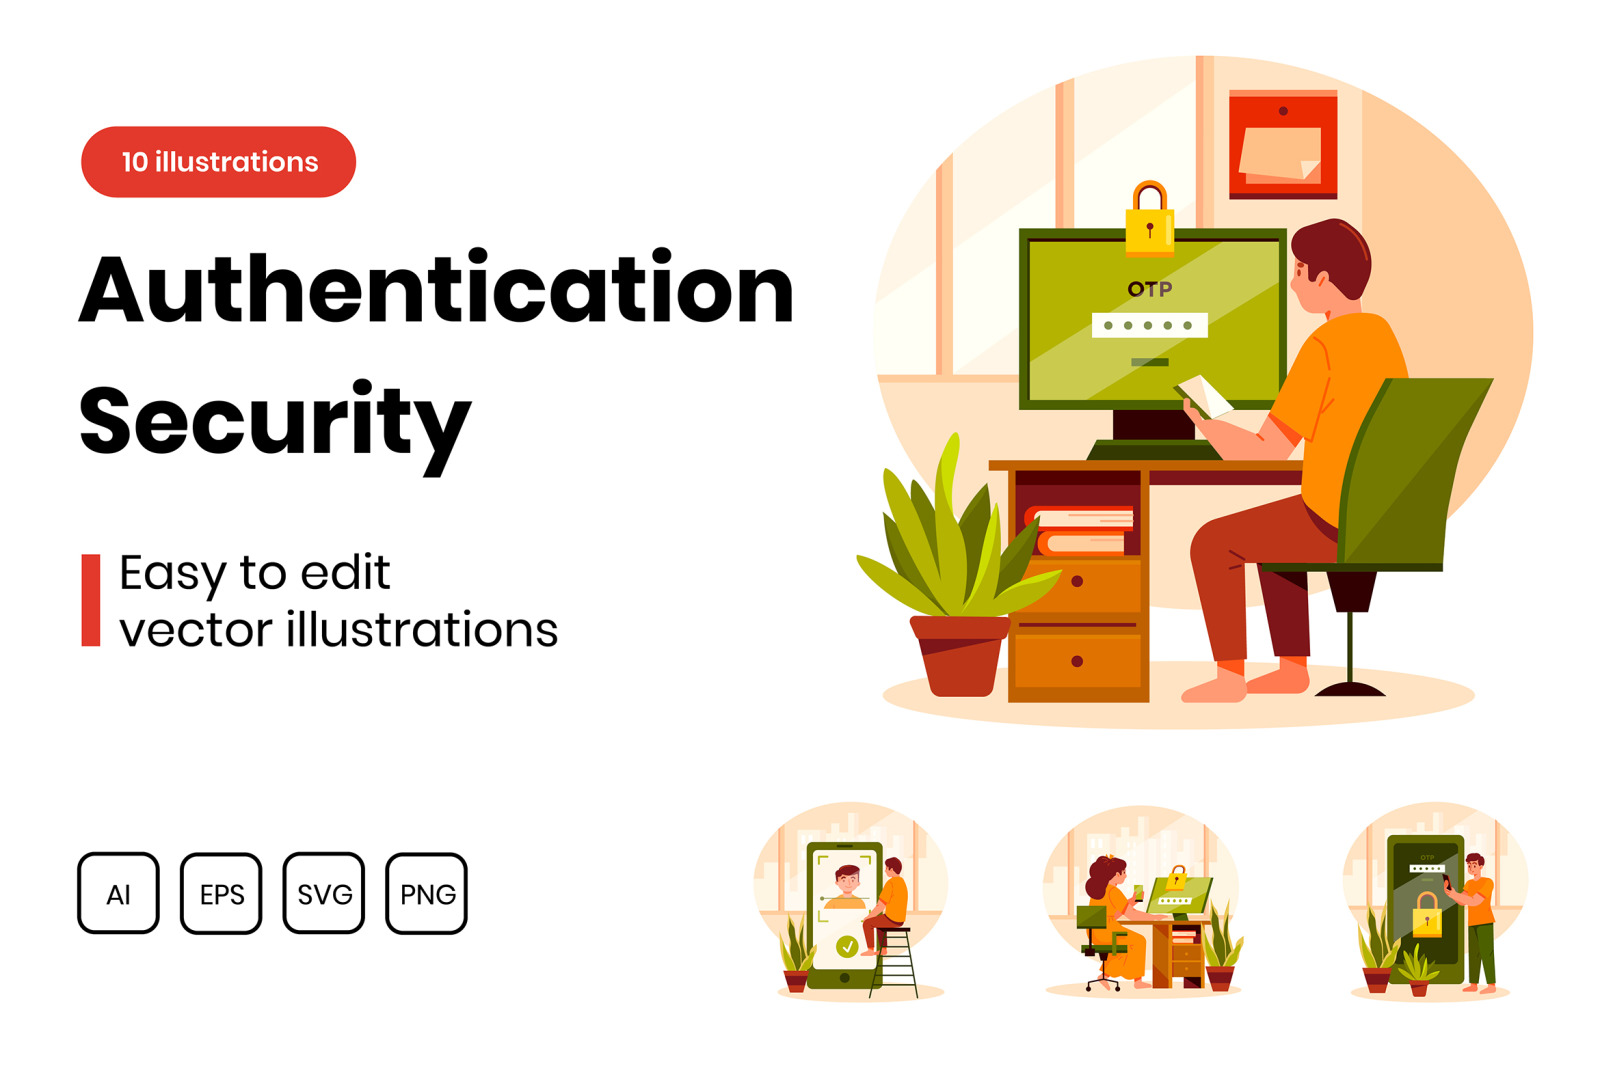 M295_ Authentication Security Illustrations